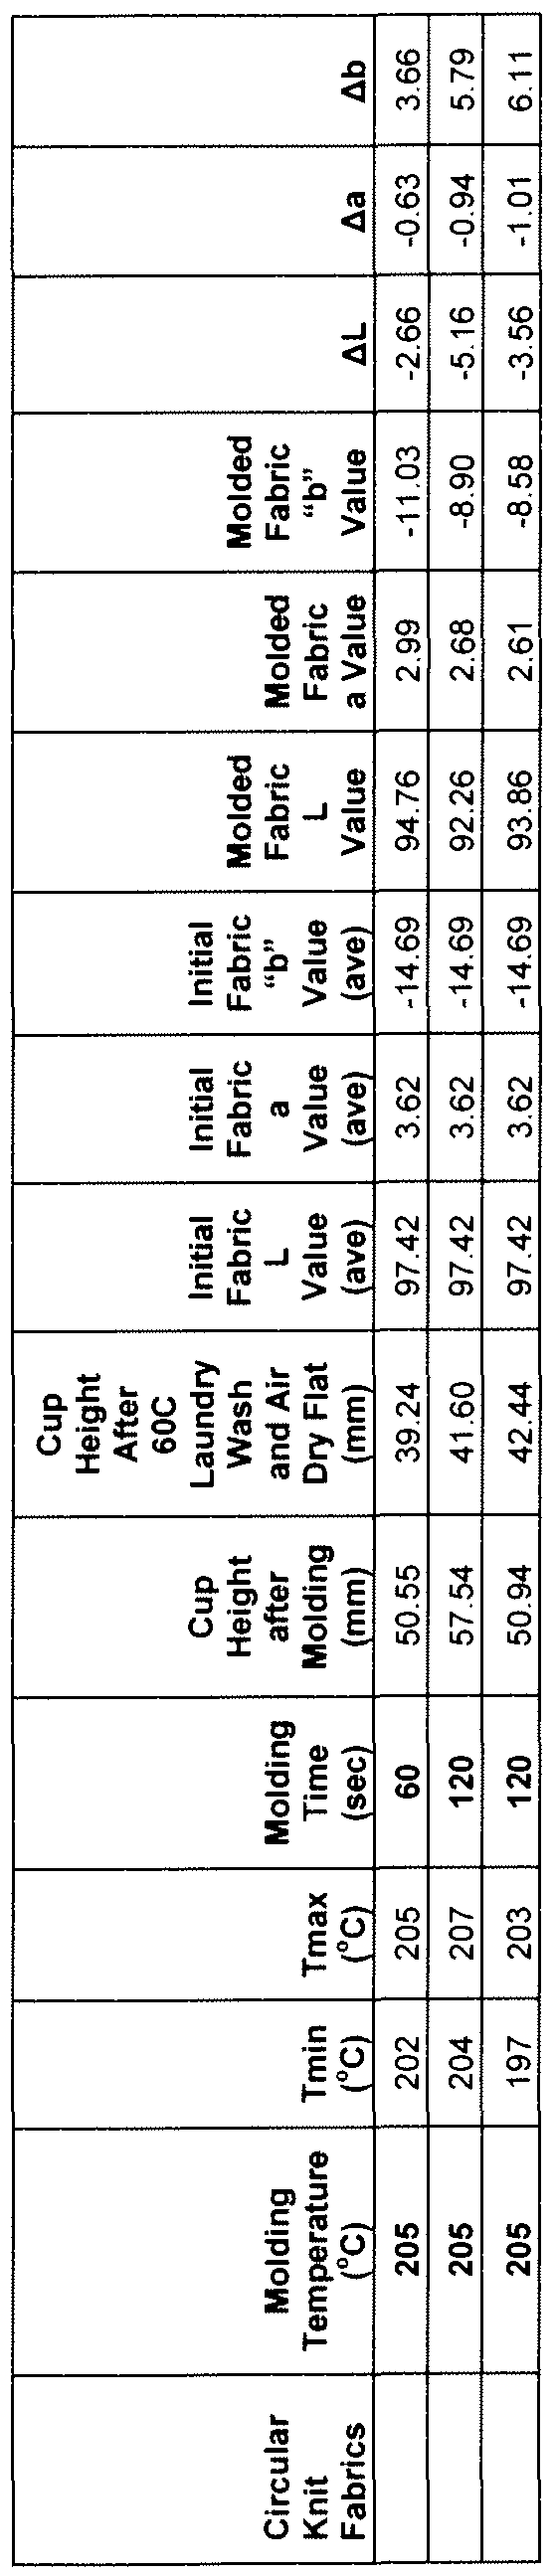 Wo2009073543a2 Process And Apparatus For Molding Fabrics Comprising Elastic Polymeric Fibres Google Patents